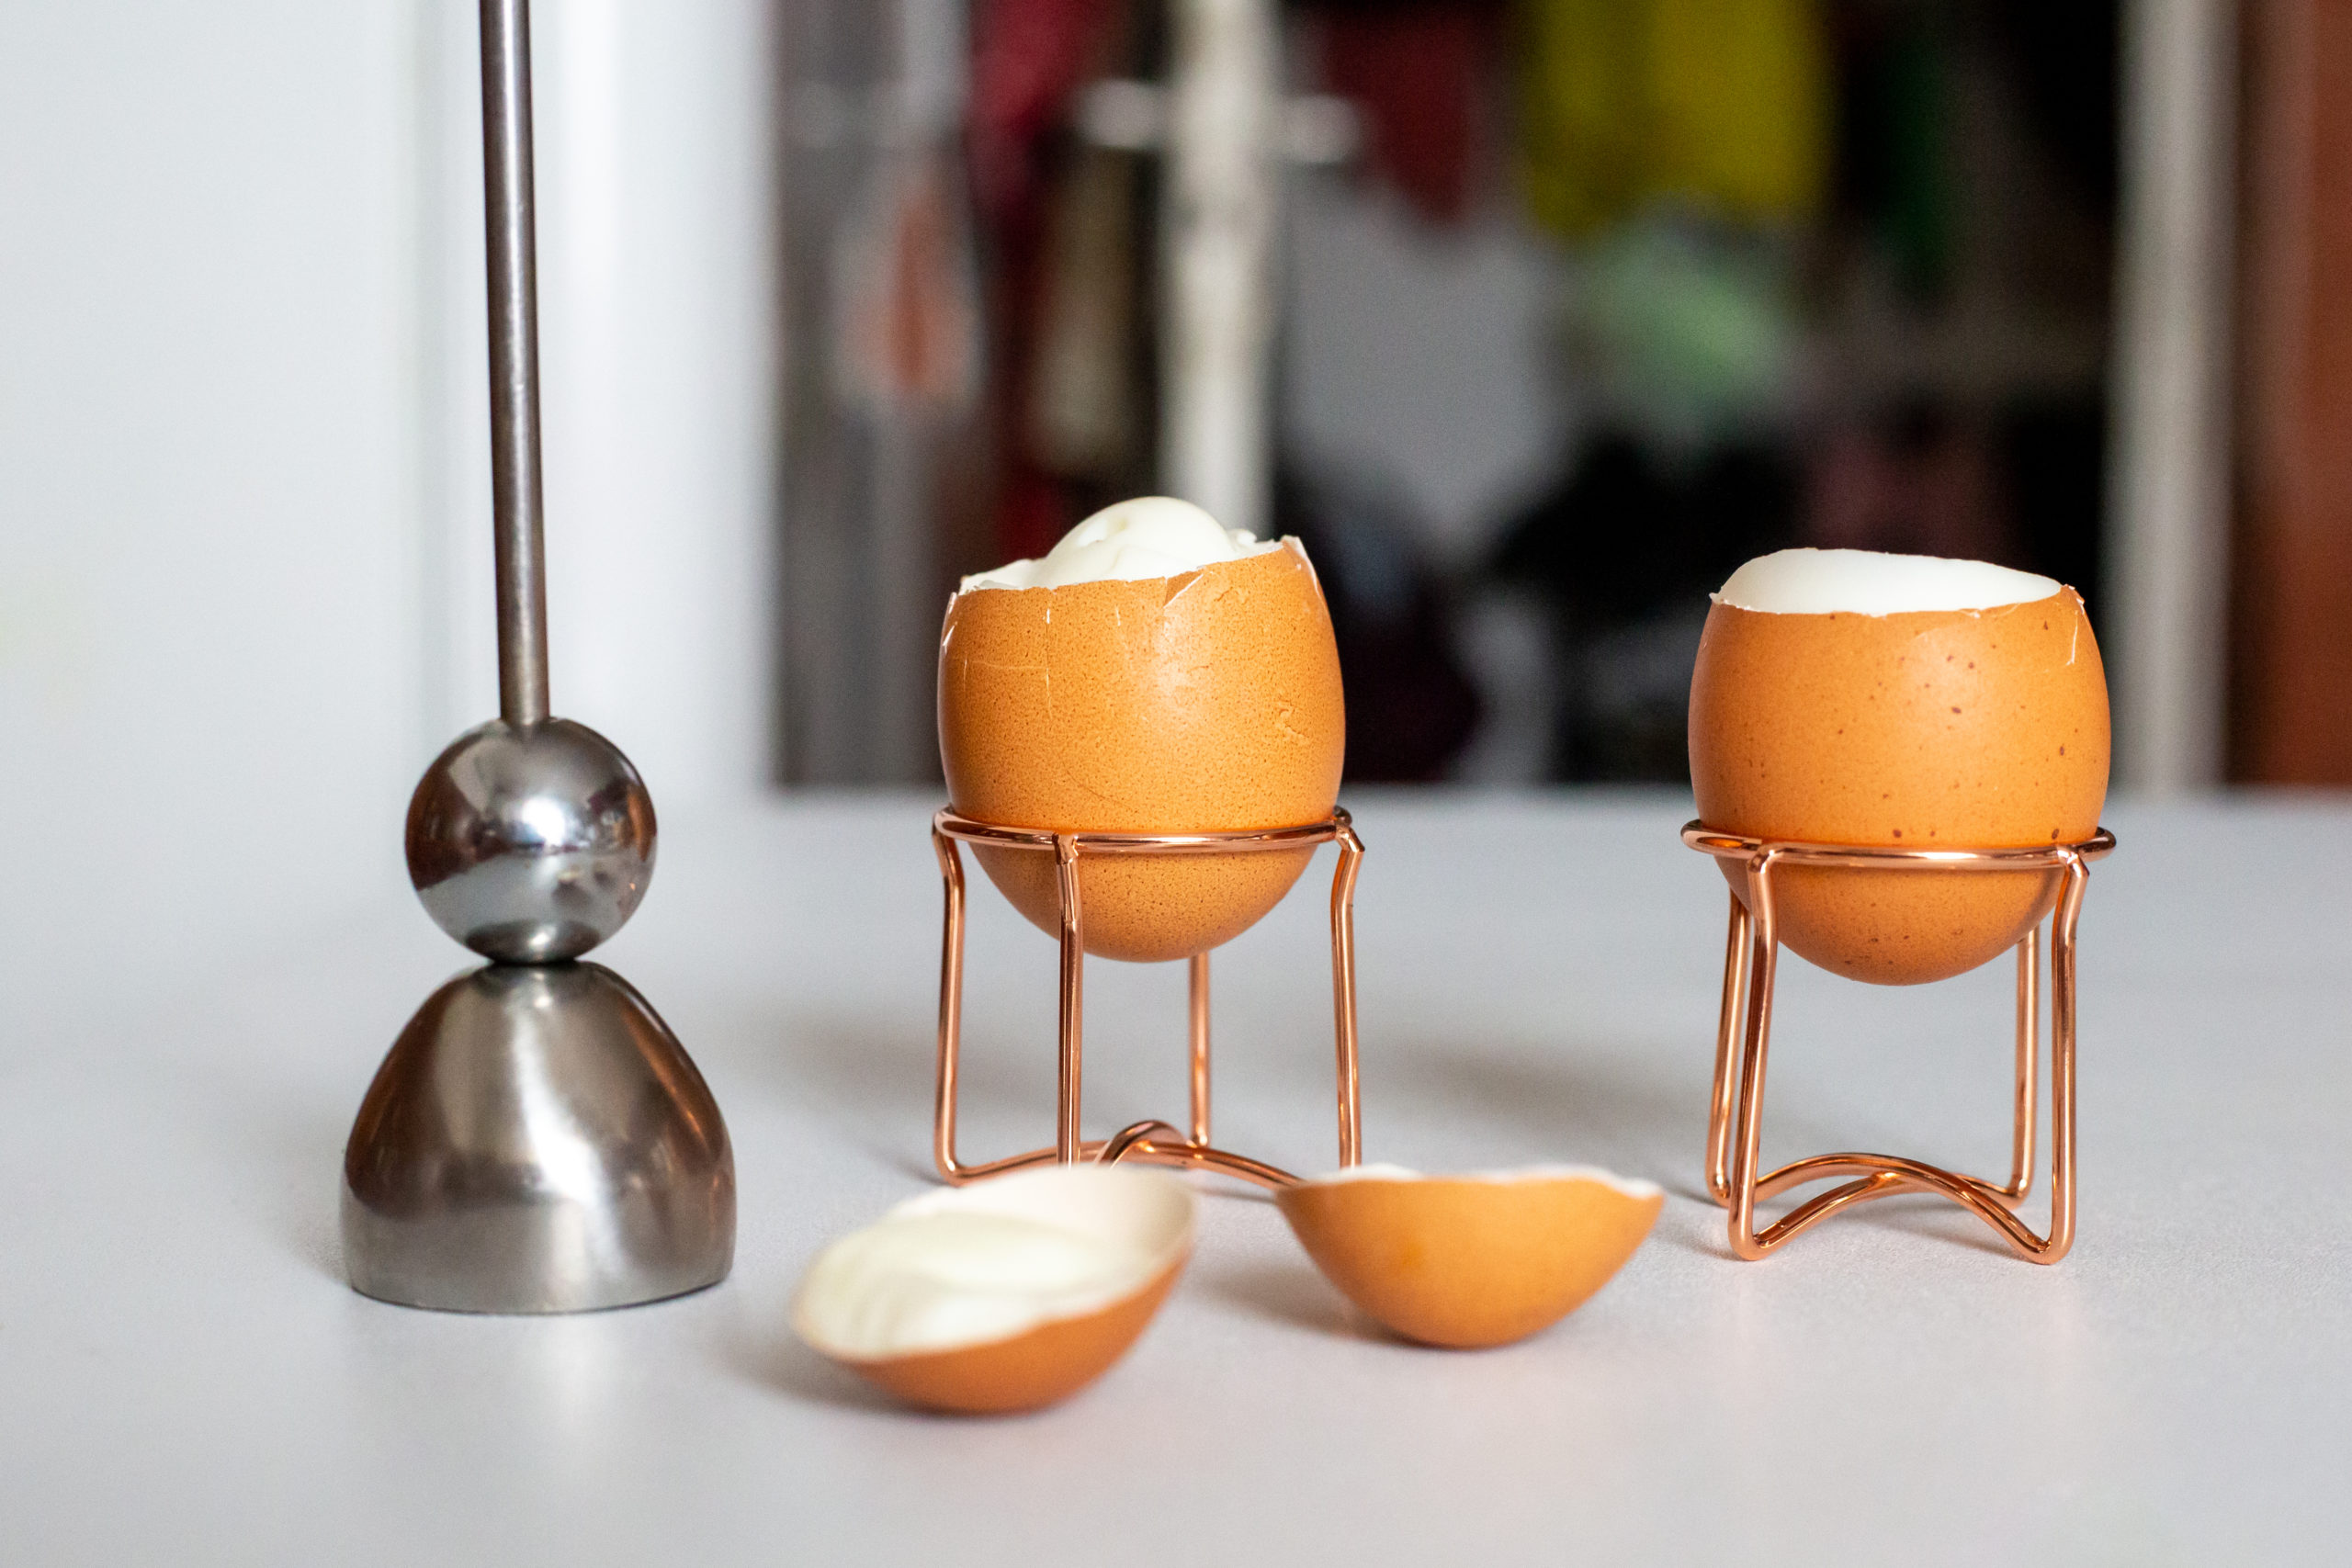 Premium Quality Egg Accessories White Ceramic Top German Engineered Stainless Steel Egg Topper The Original Clack Egg Opener